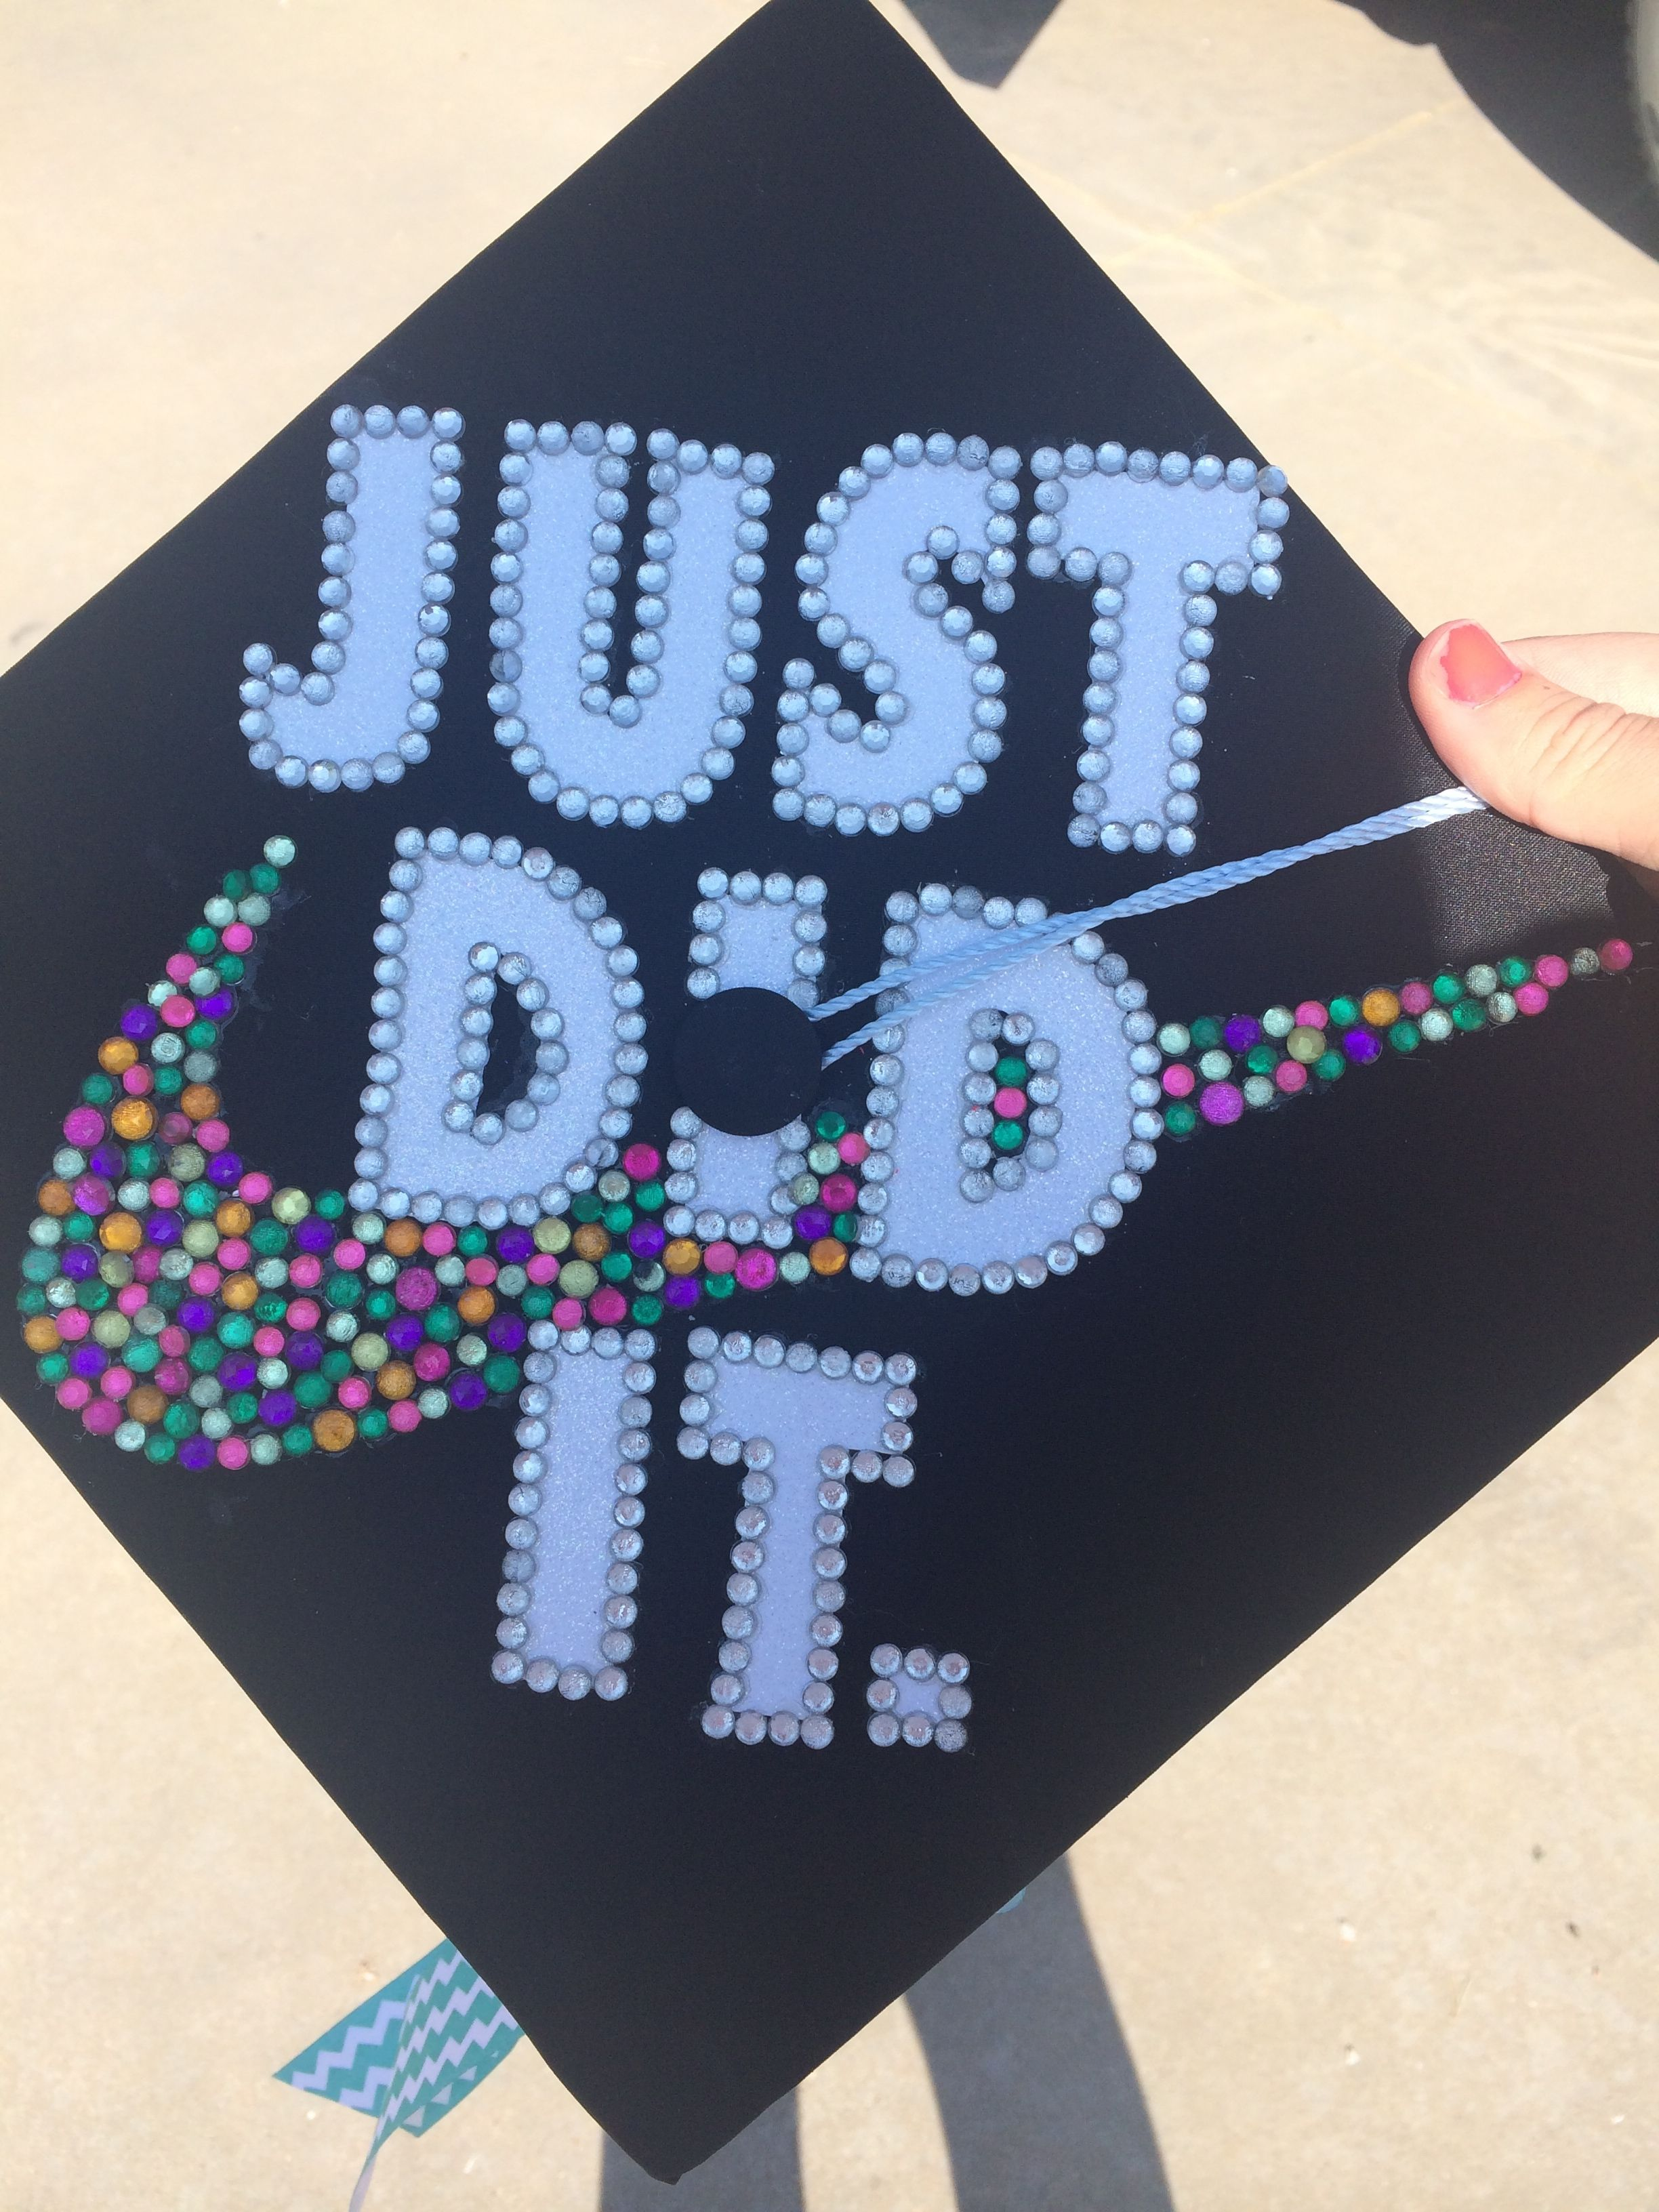 My Graduation Cap nike swoosh 2014 crafts Pinterest